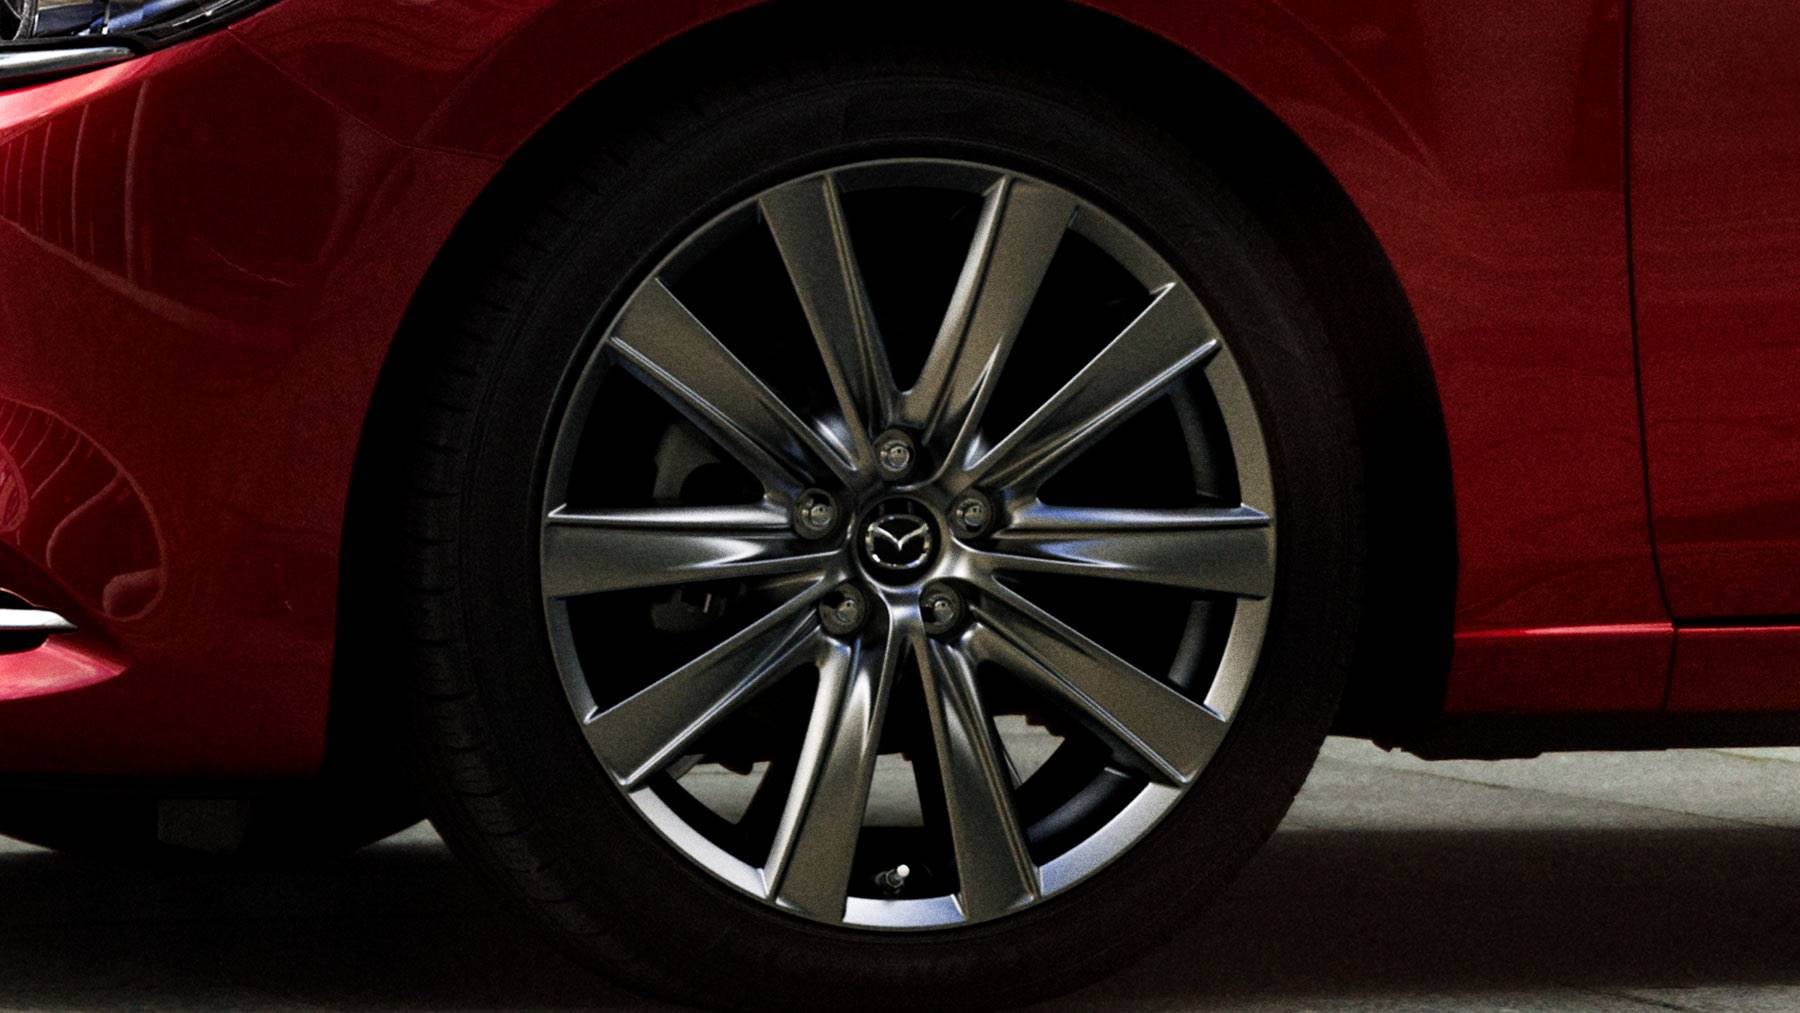 Turn Heads As You Cruise in the Mazda6!